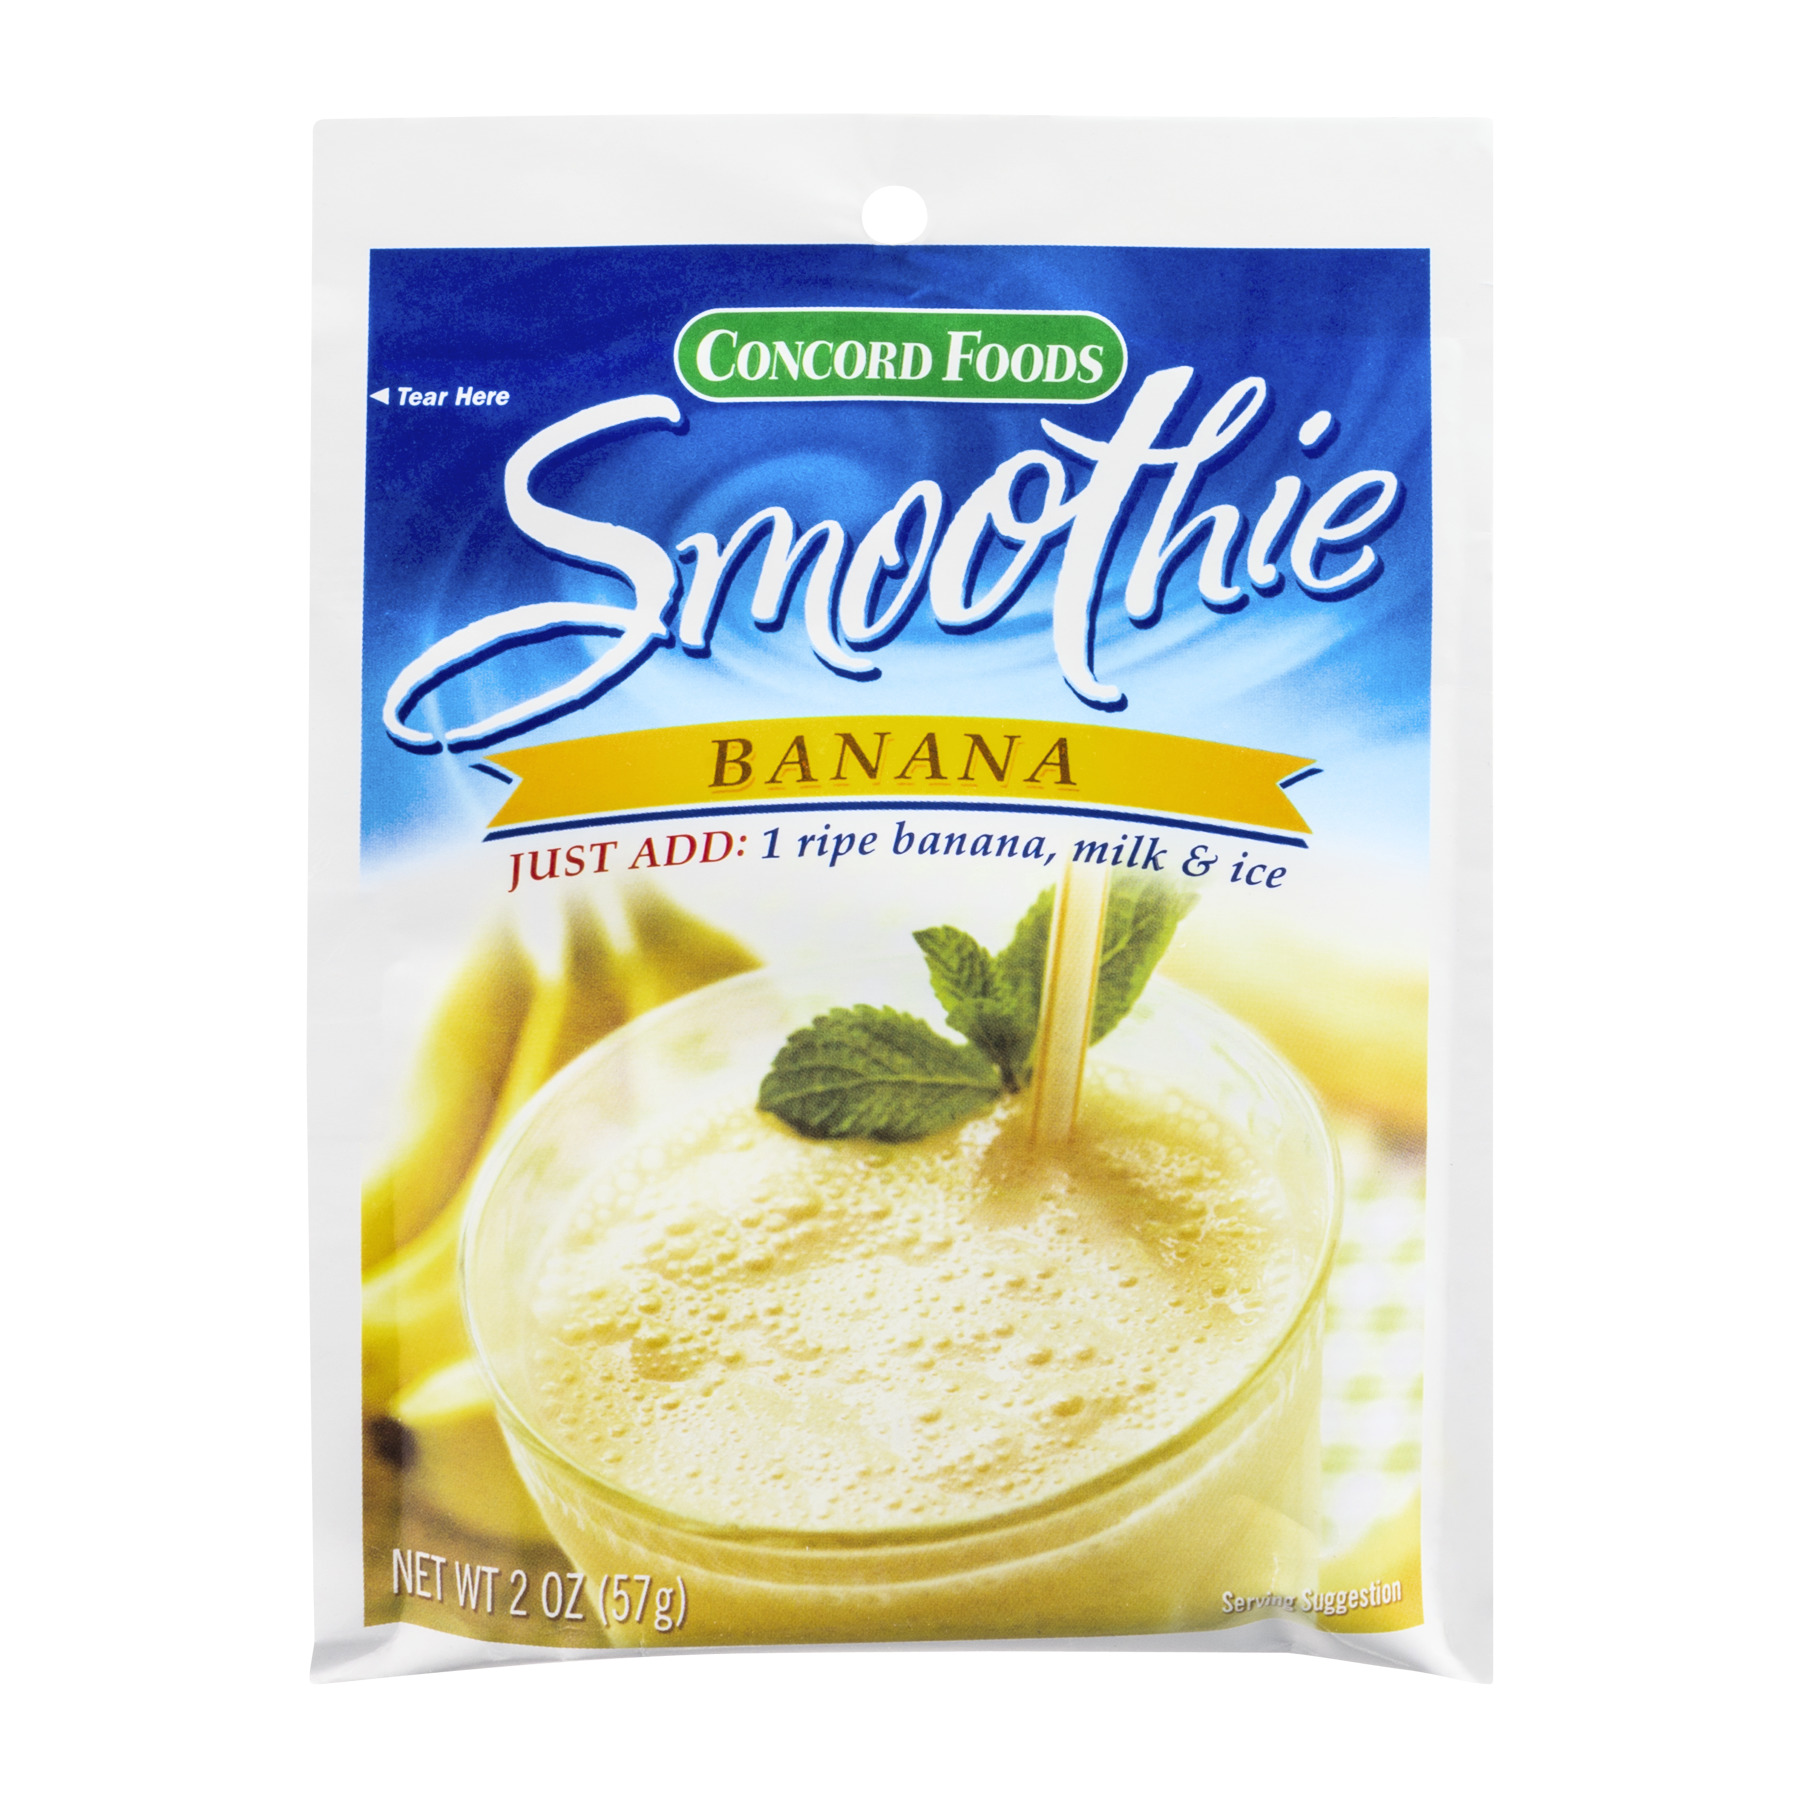 Concord Foods Smoothie Banana, 2.0 OZ